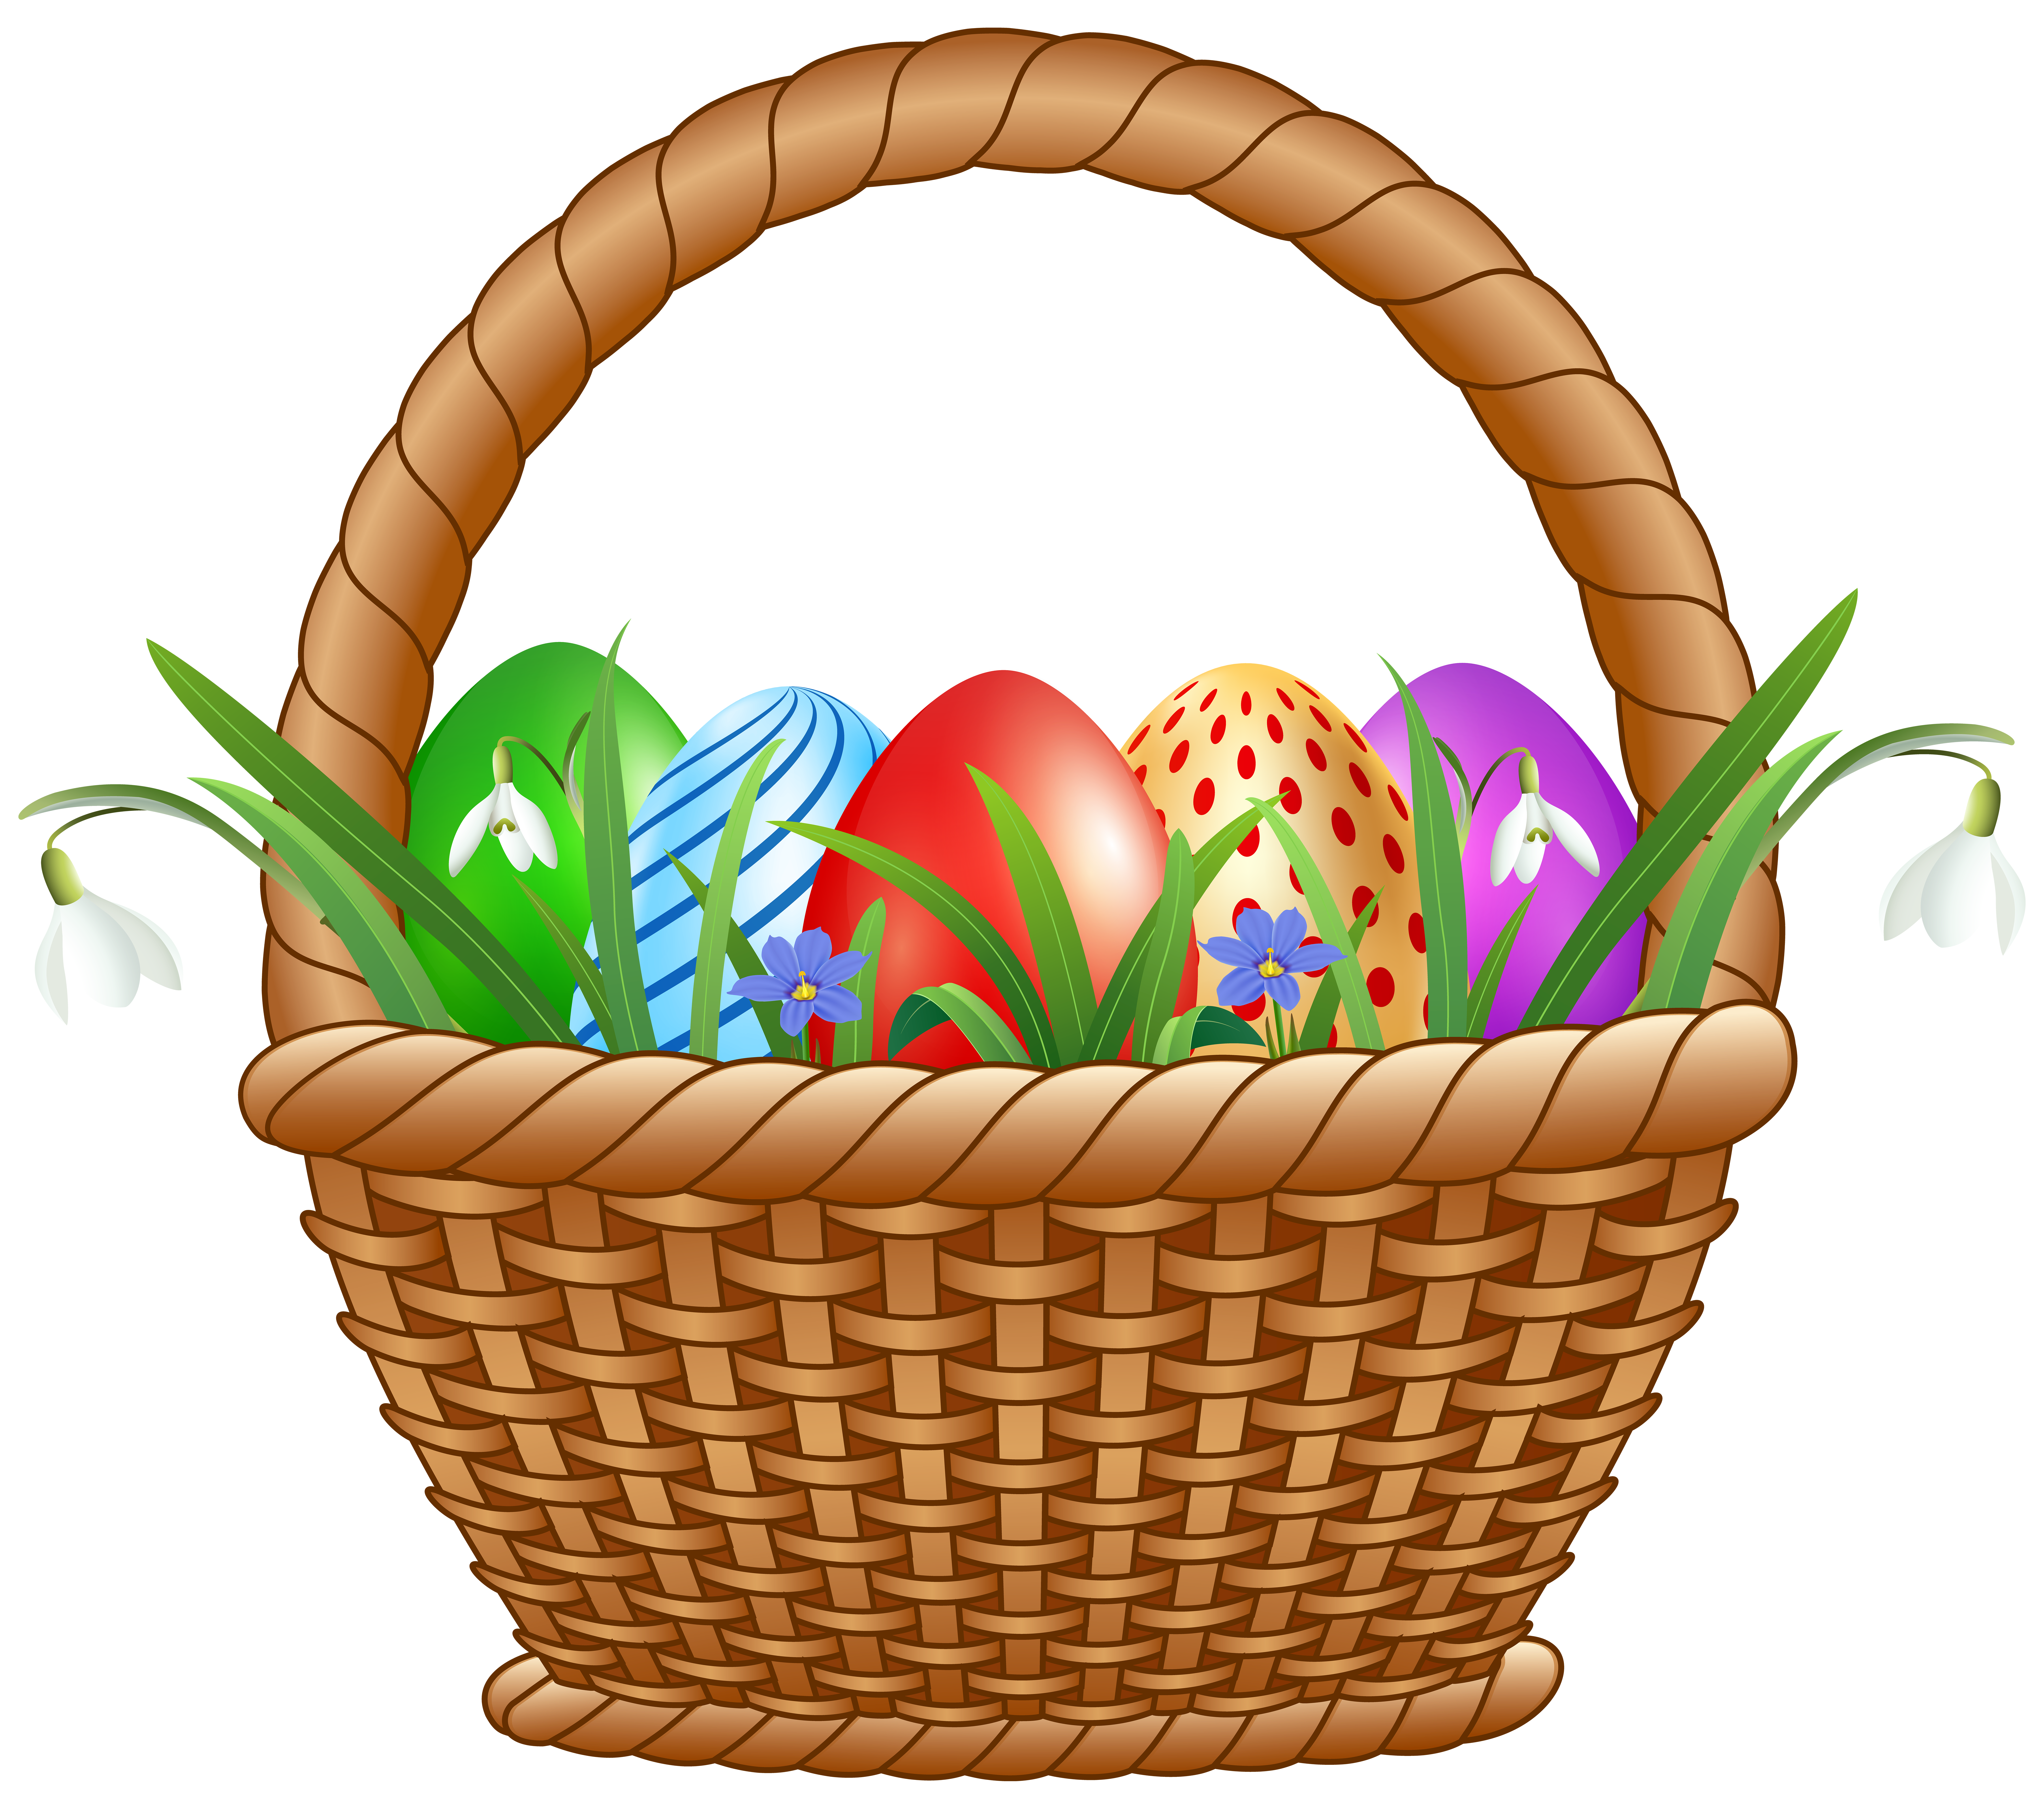 Easter Basket with Eggs Transparent Image.